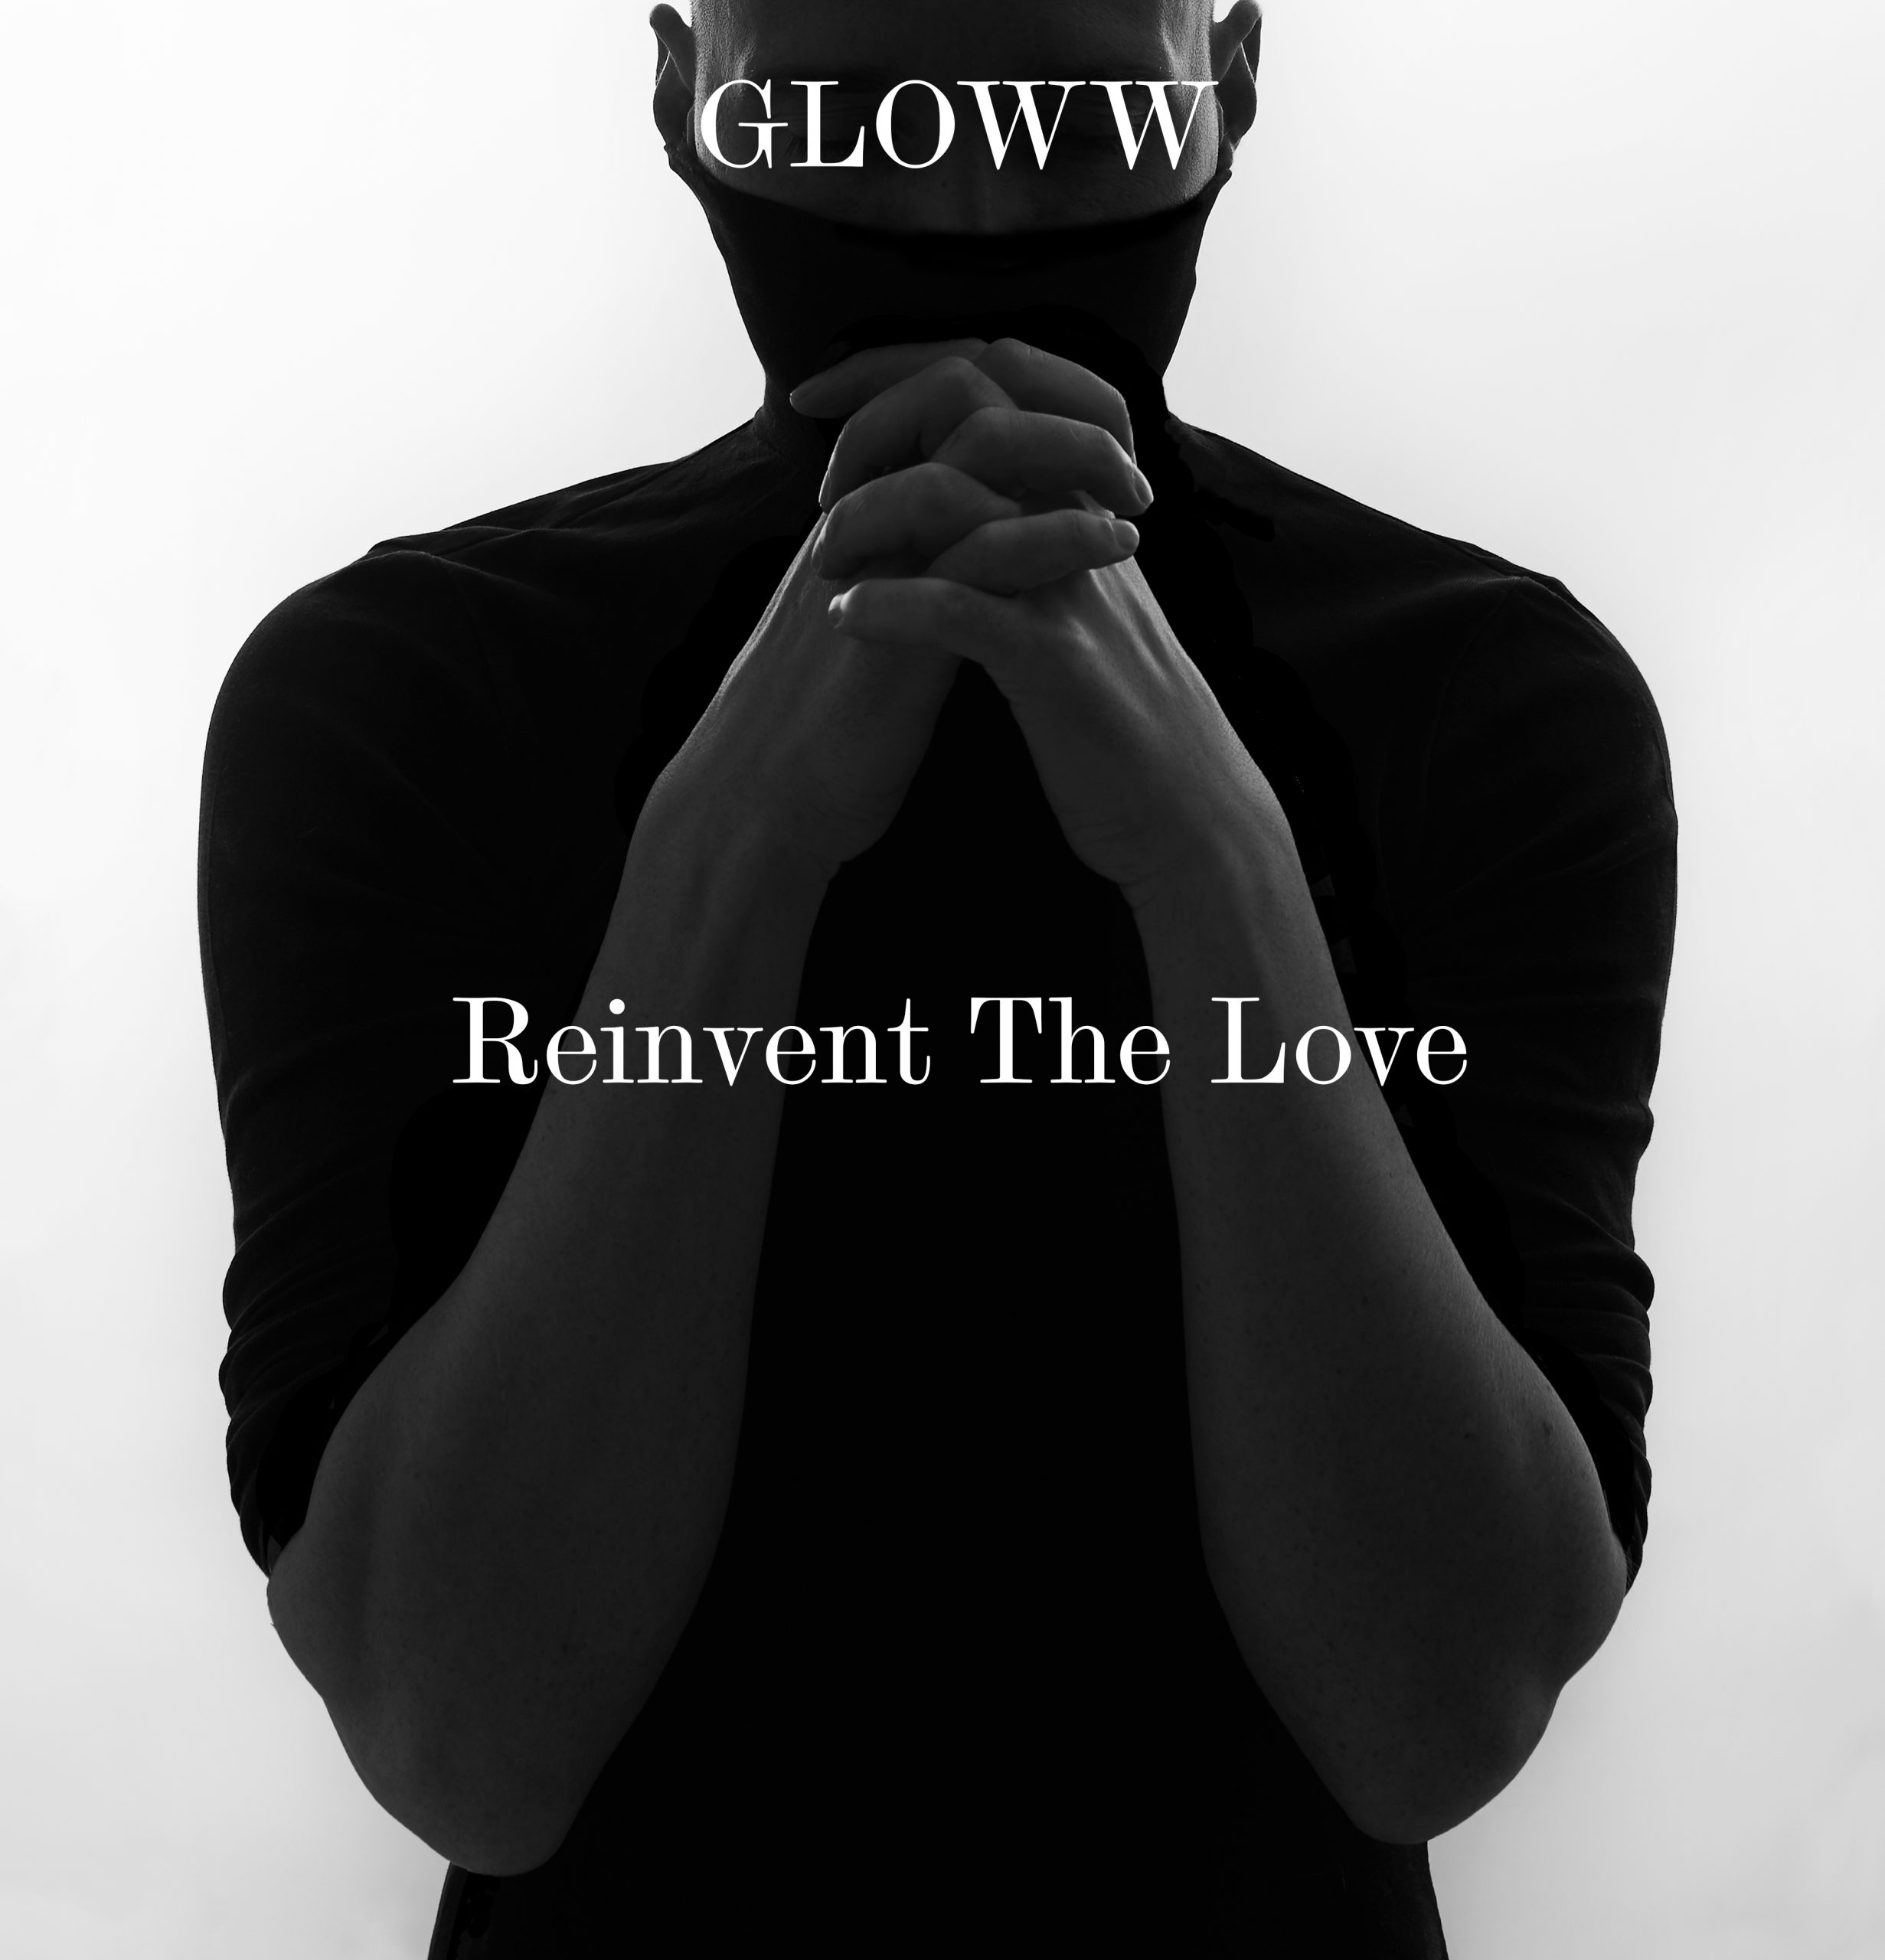 A beautiful Orchestral Electronic Sound emerges from the humble shadows as 'Gloww' releases 'Reinvent The Love'